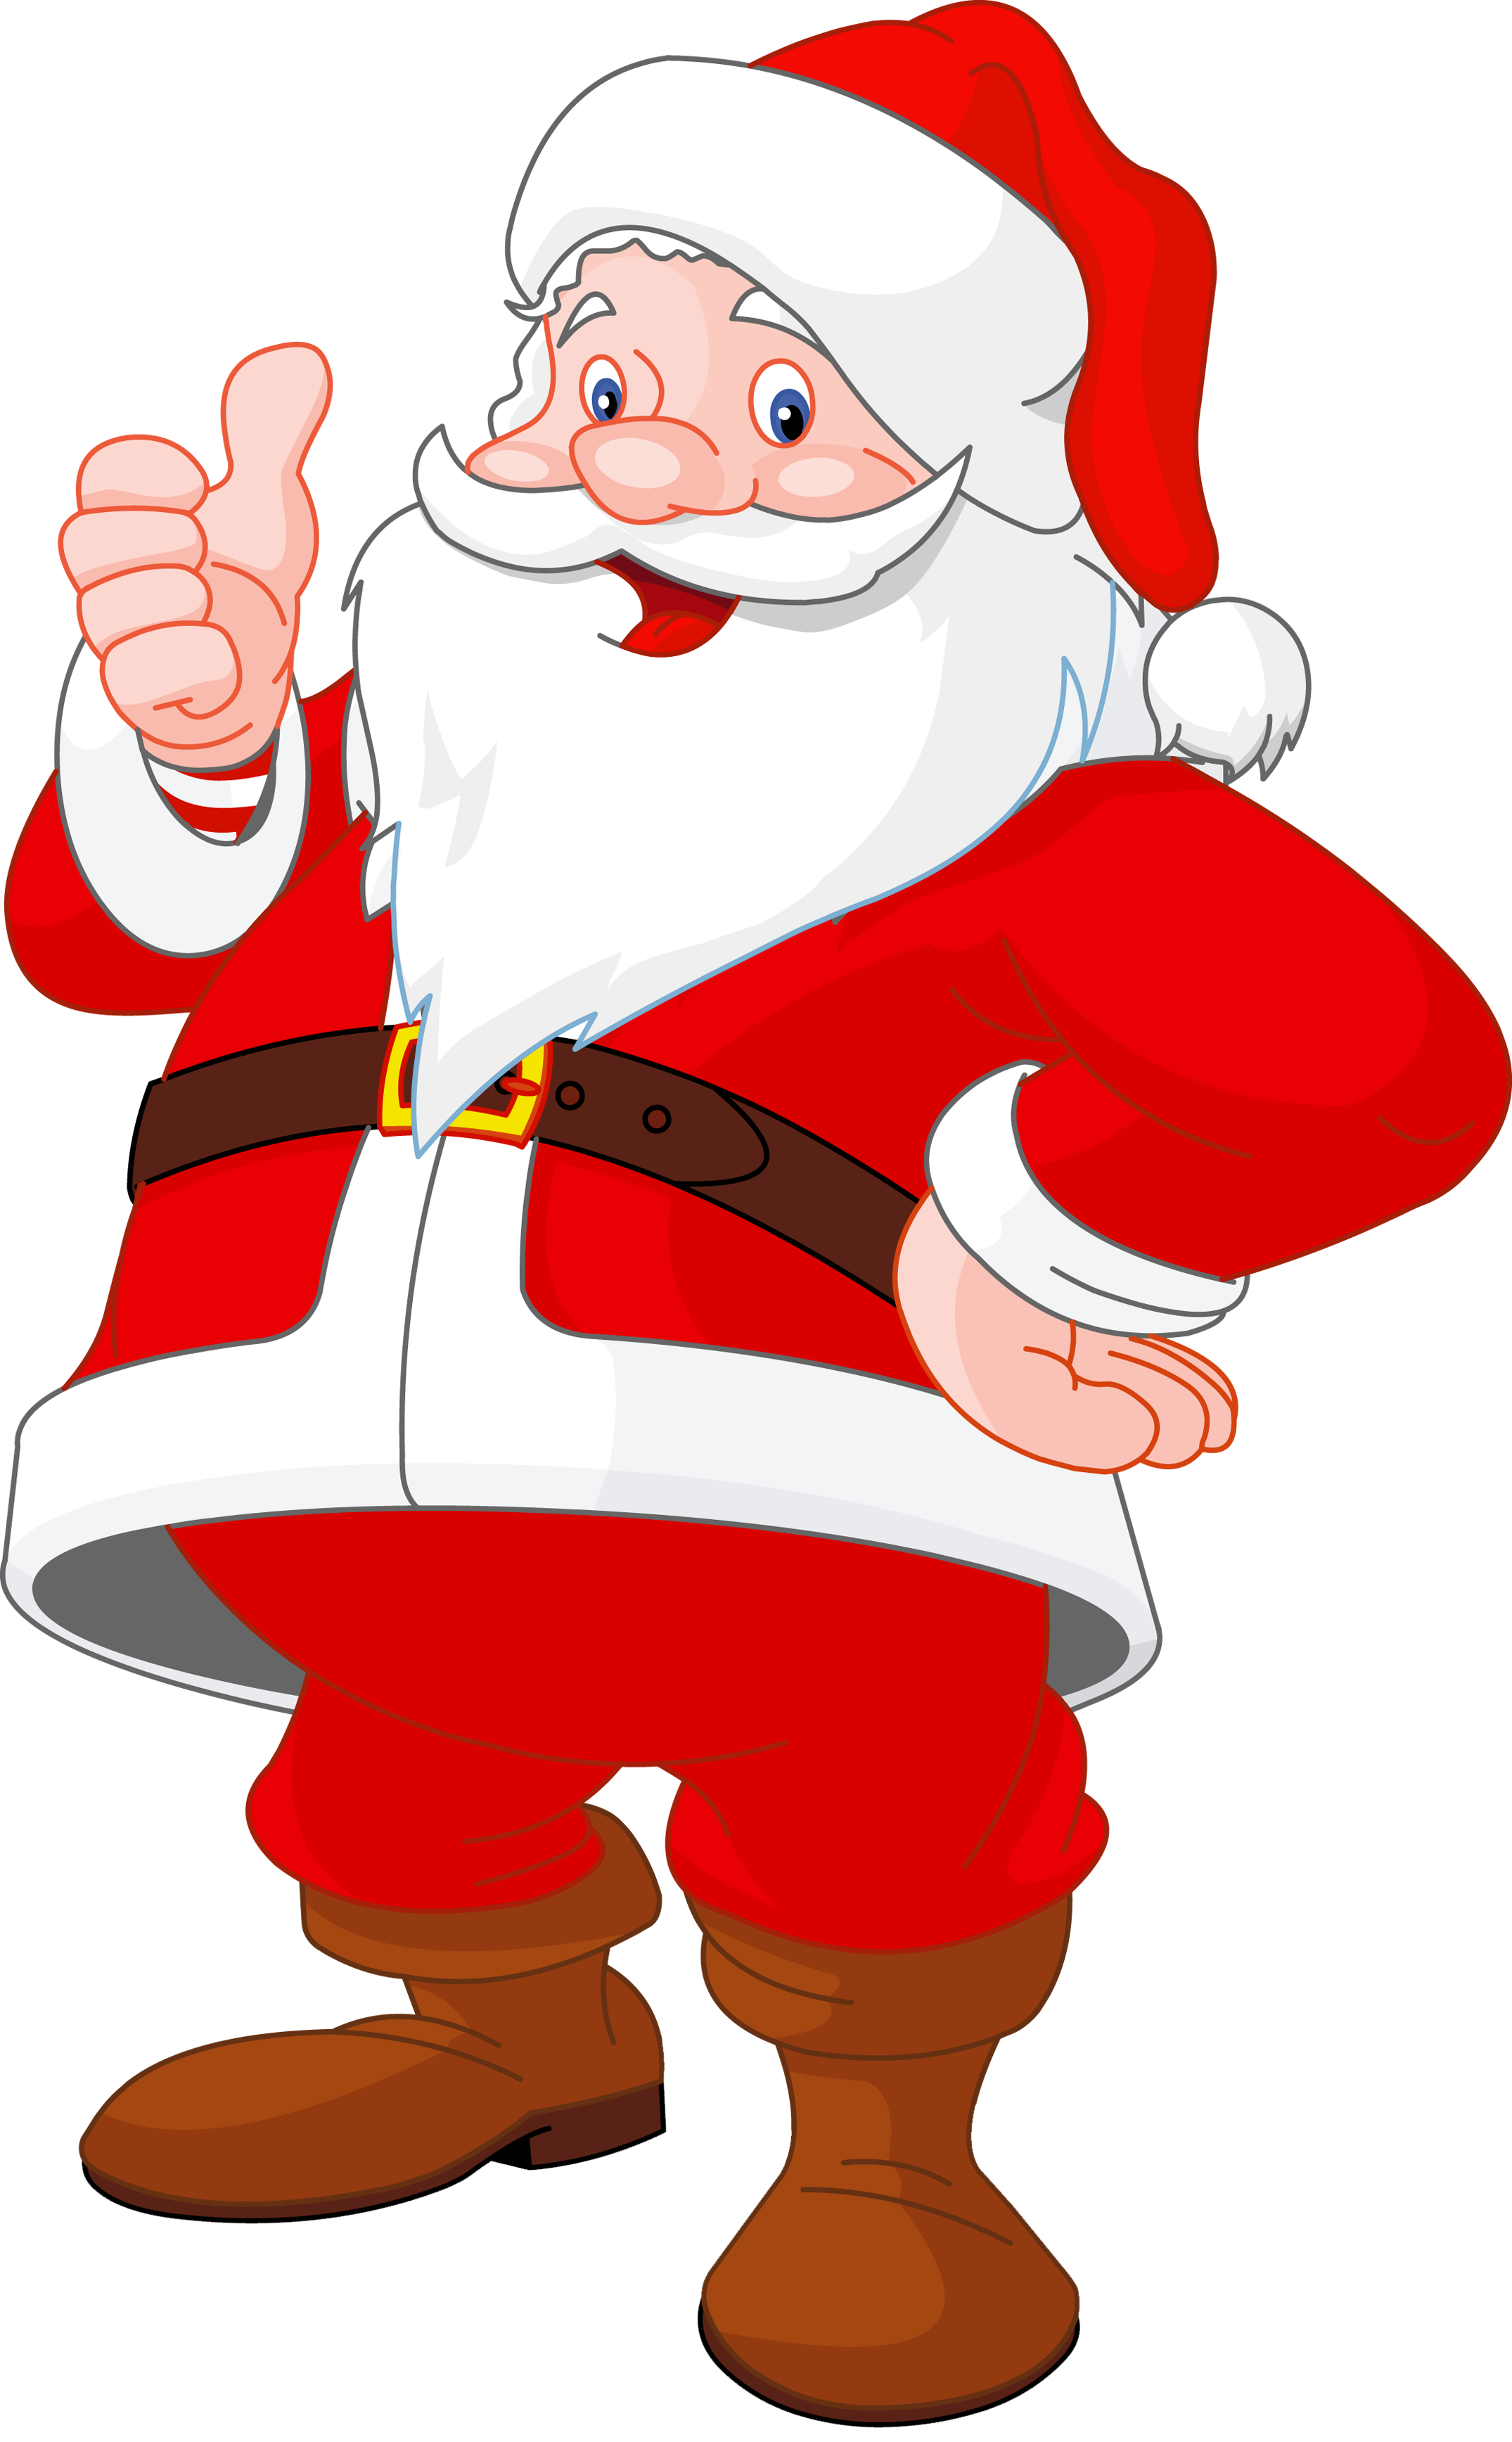 hight resolution of santa claus cartoon images free download